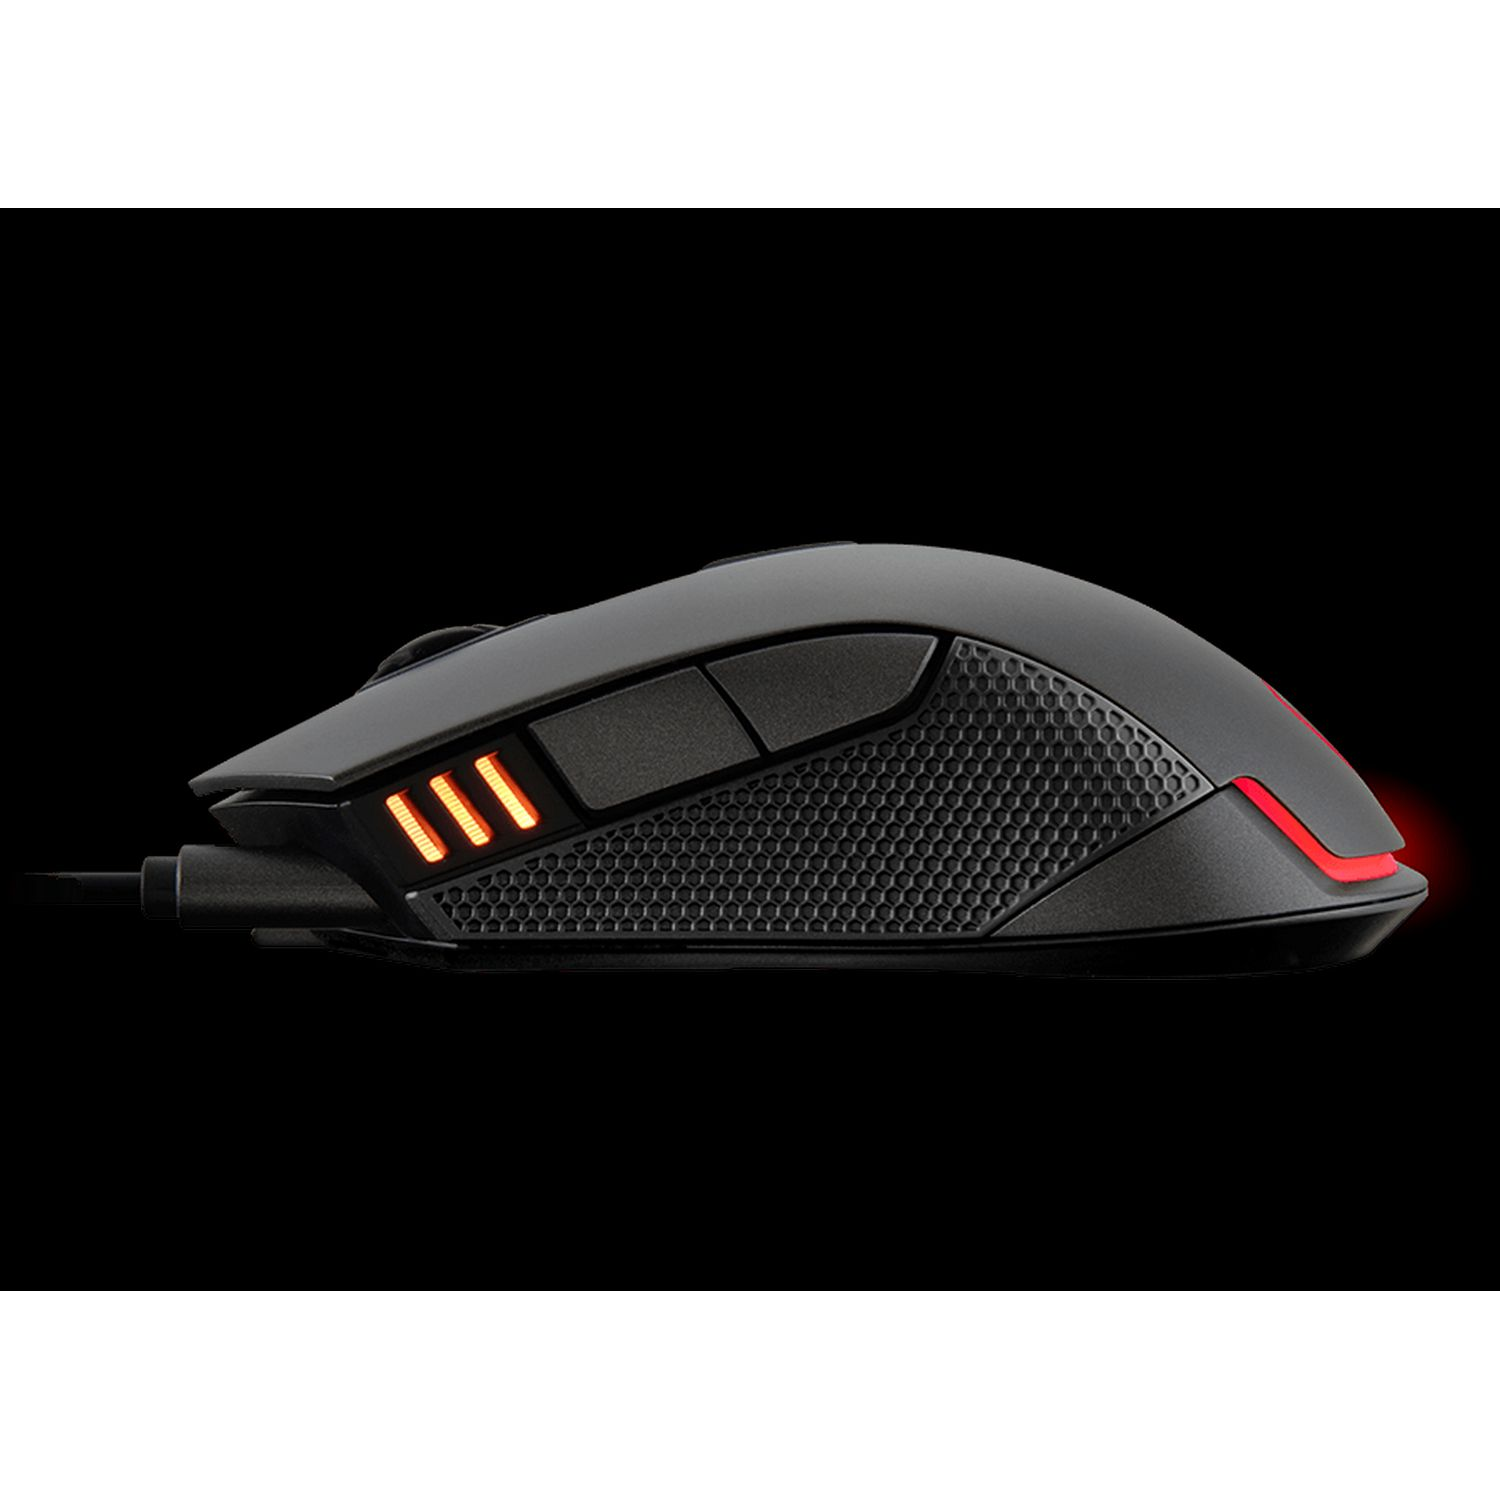 COUGAR REVENGER OPTICAL GAMING MOUSE 3MREVWOI.0001